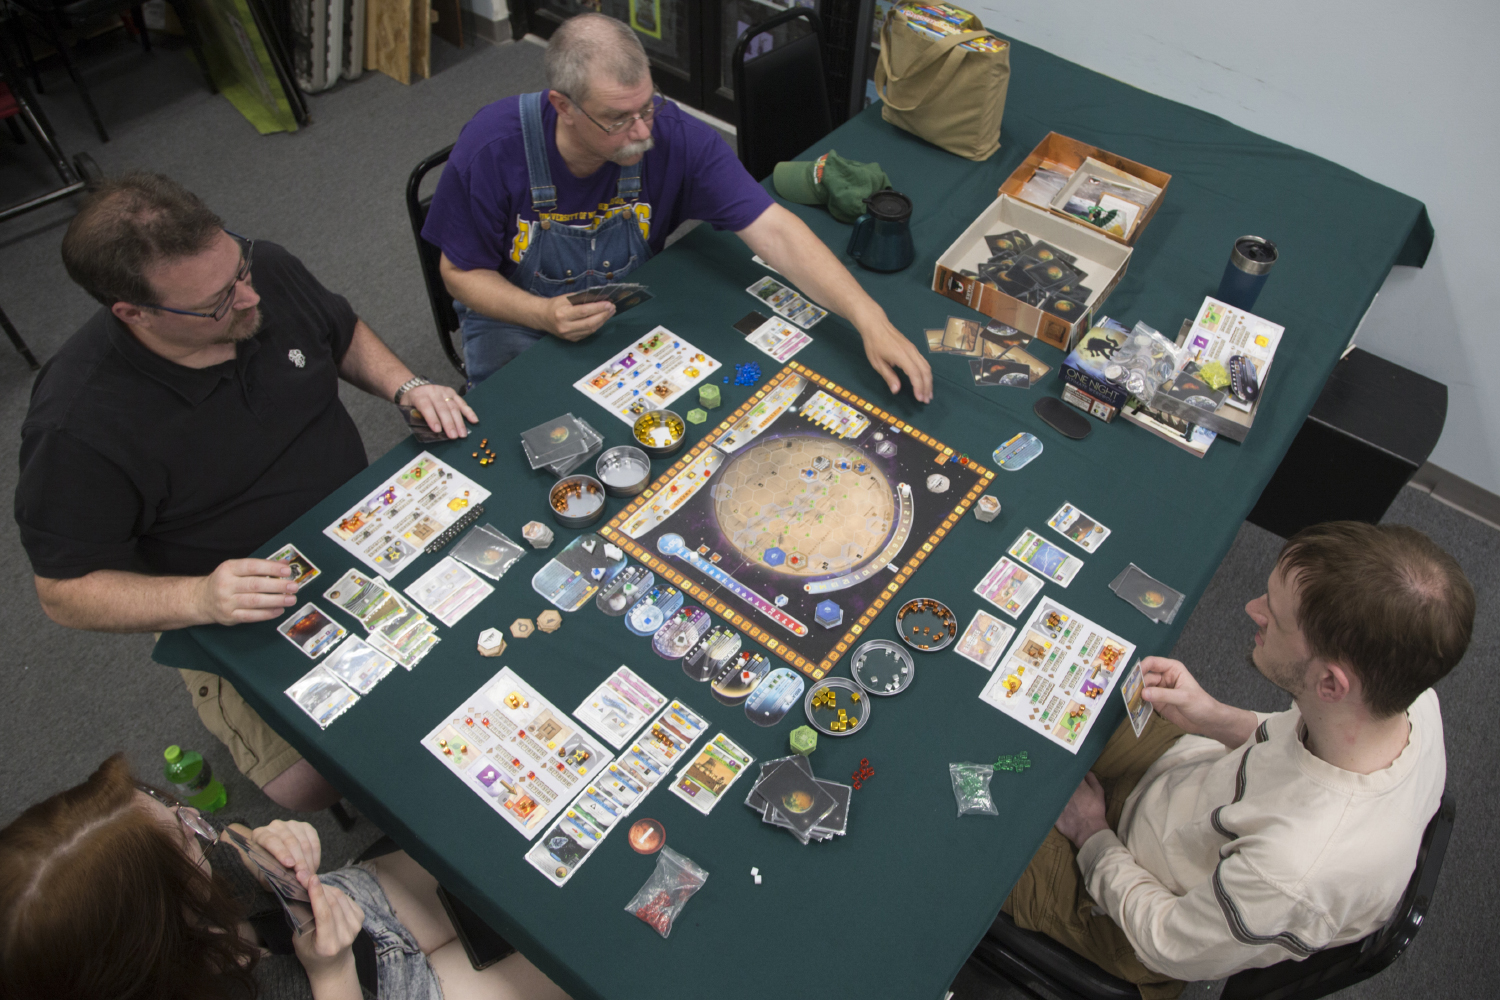 Board game club attendees play a game at Hobby Corner located in the Sycamore Mall on Thursday, June 6, 2019. (Emily Wangen/The Daily Iowan)